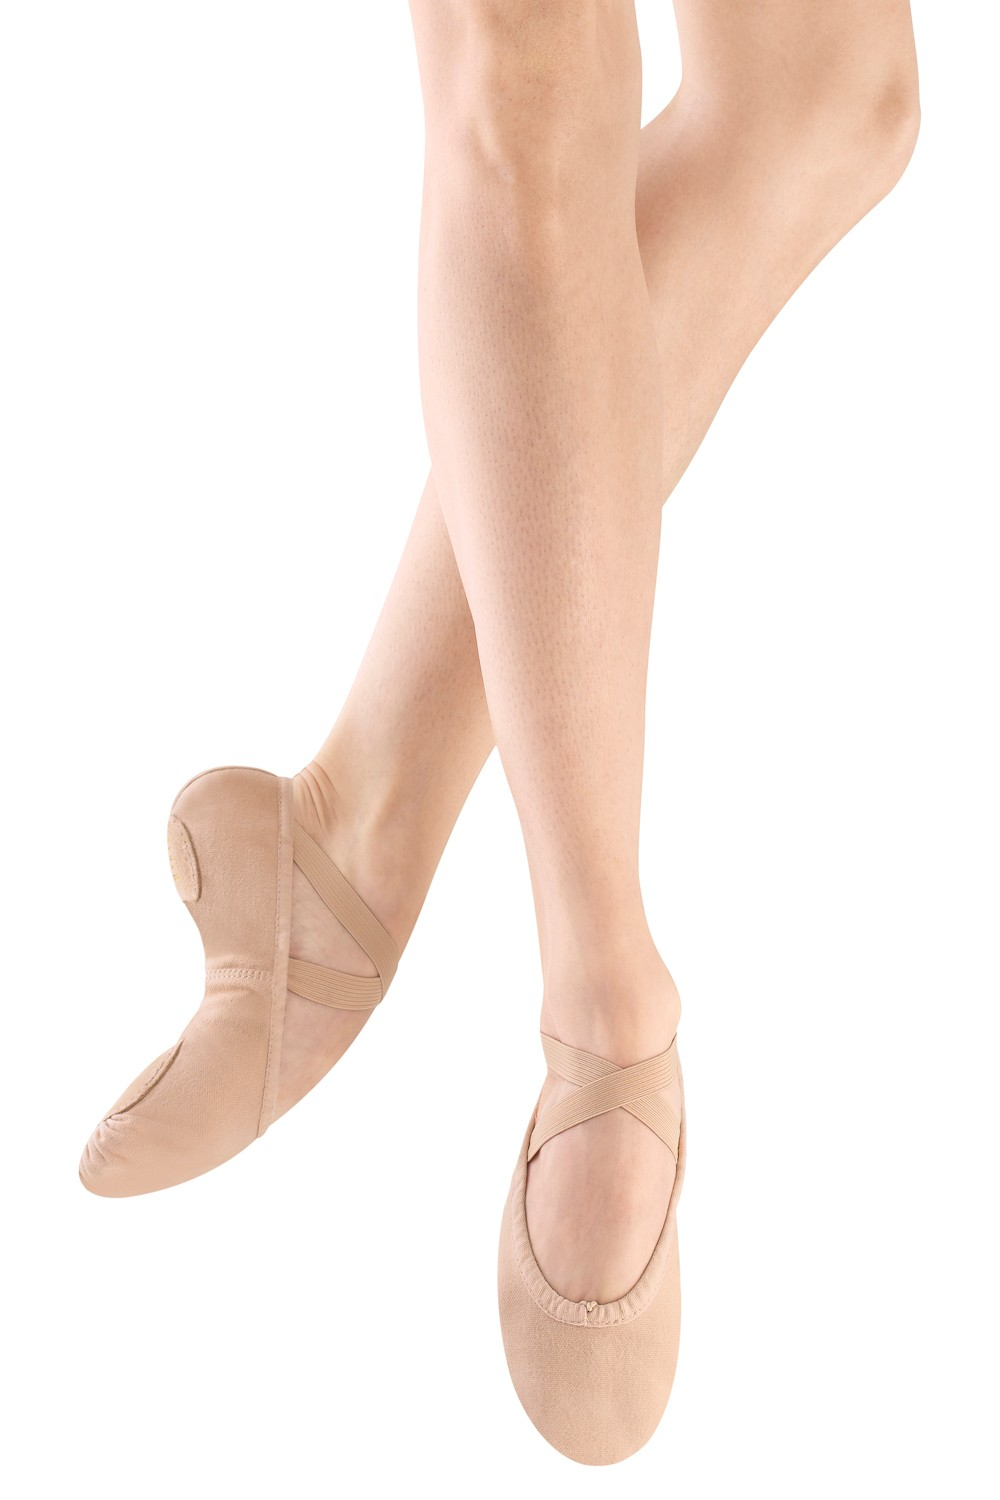 Proform  Women's Ballet Shoes